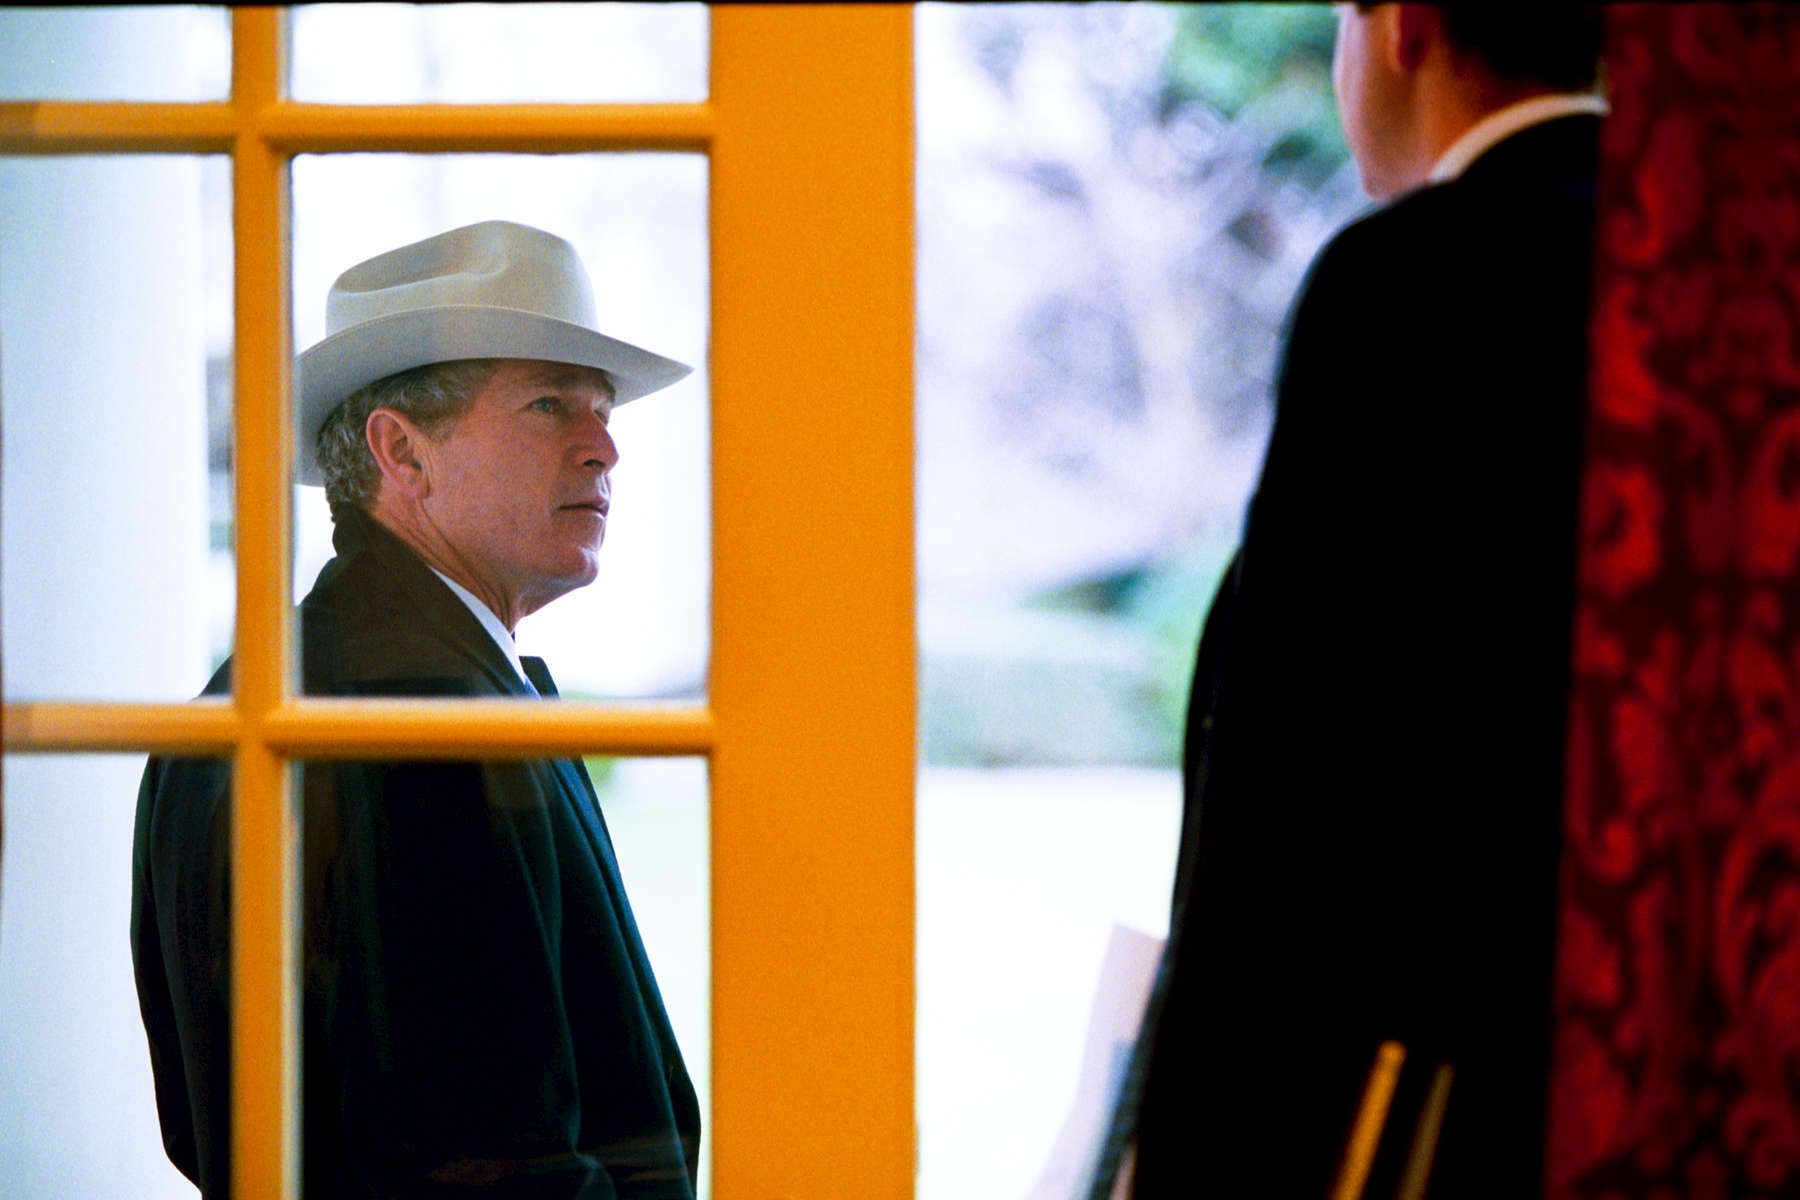 President Bush stands on the Colonnade and talks with Dan Bartlett who is standing in the doorway to the Outer Oval Office. The President is wearing a coat and cowboy hat.